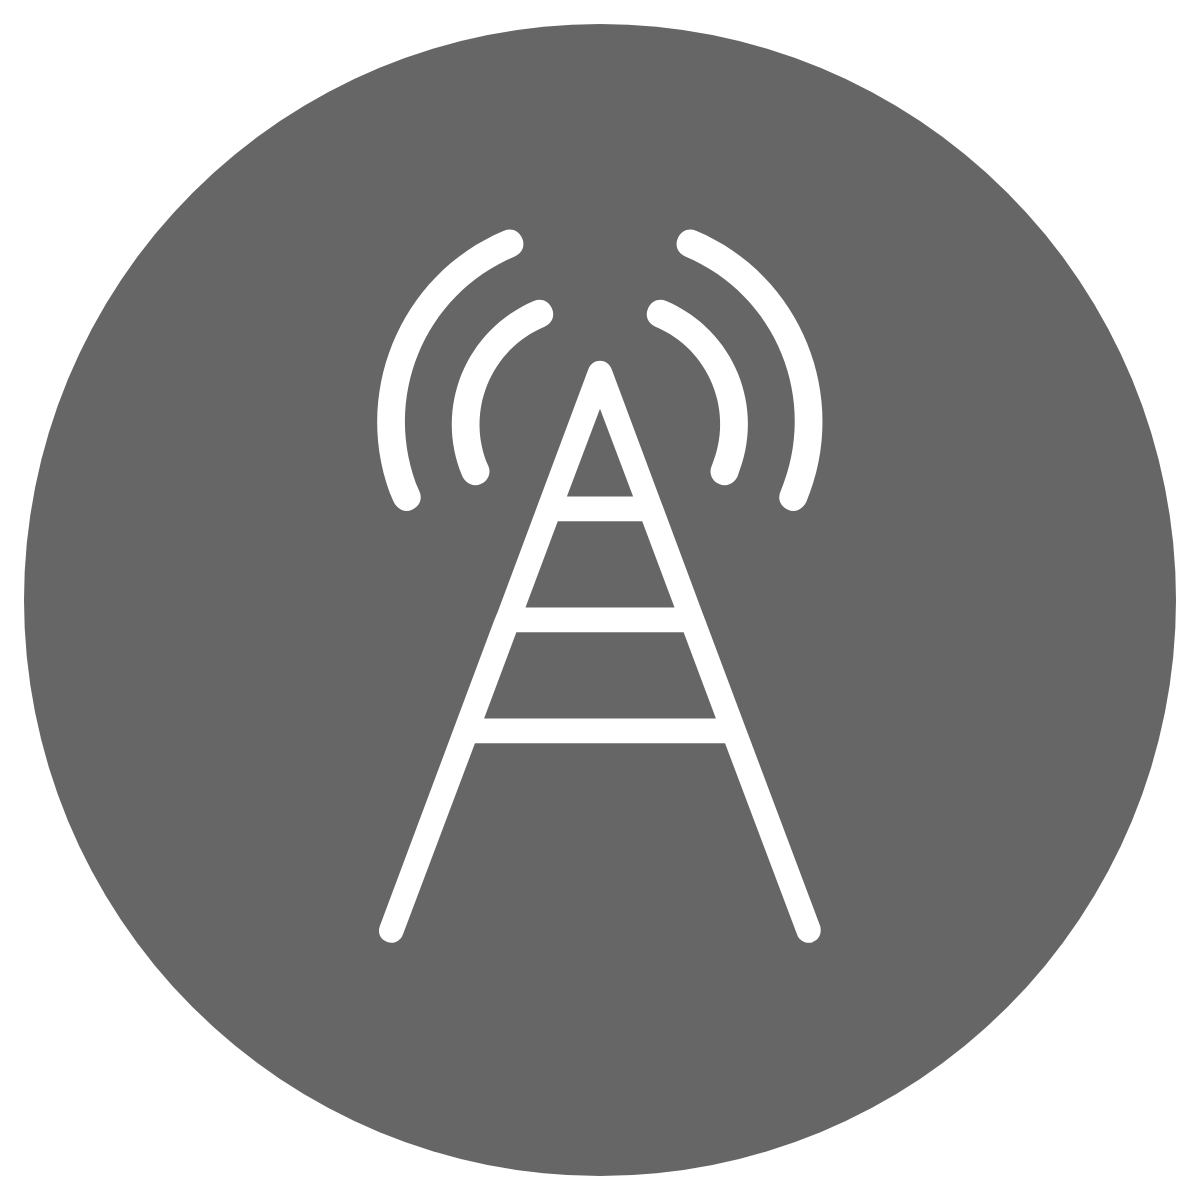 simple line drawing of a mobile telecom tower